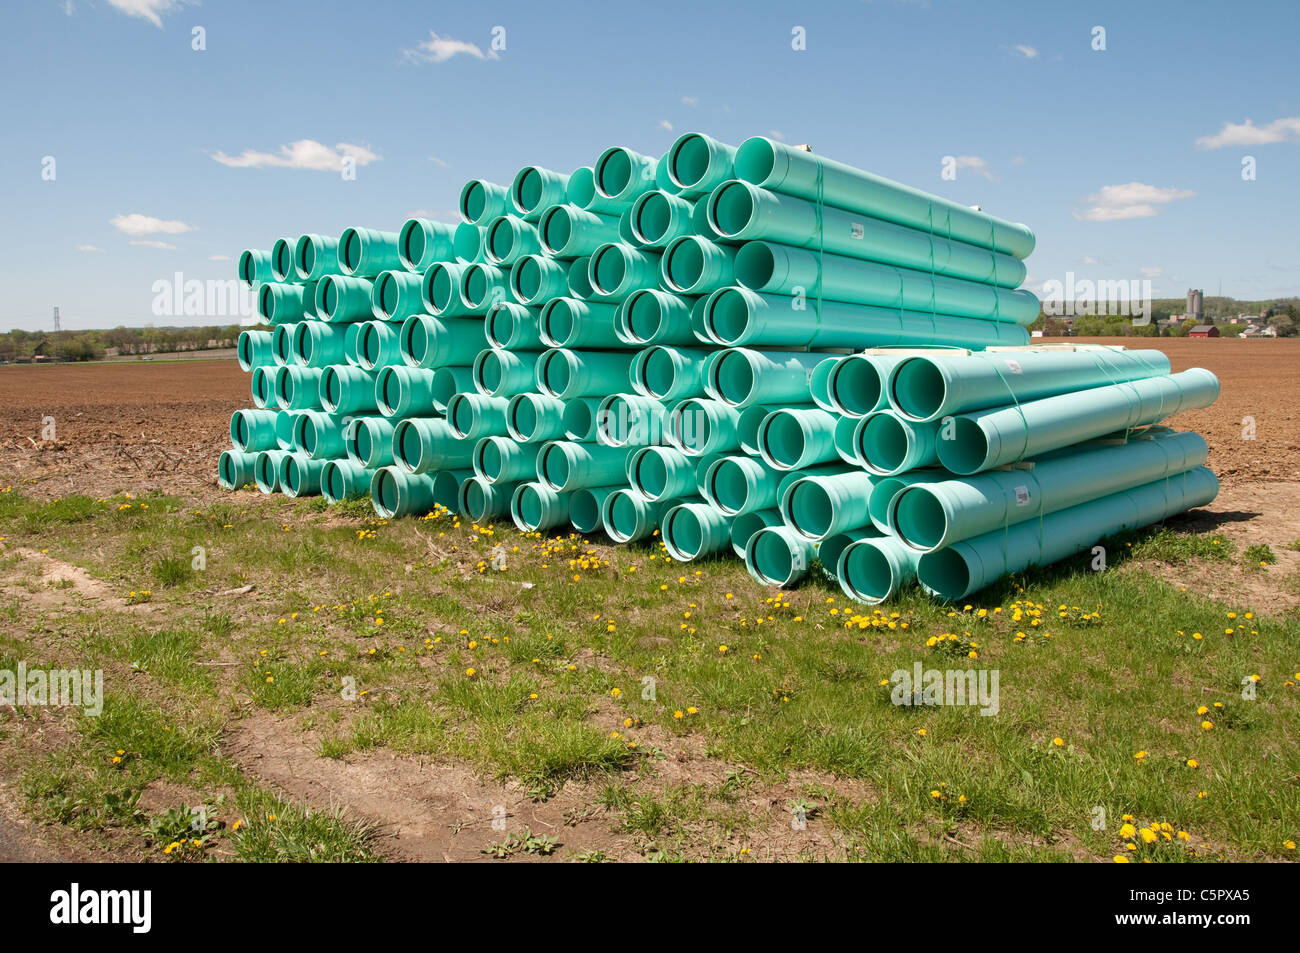 pile of sewer or drainage piping - Stock Image